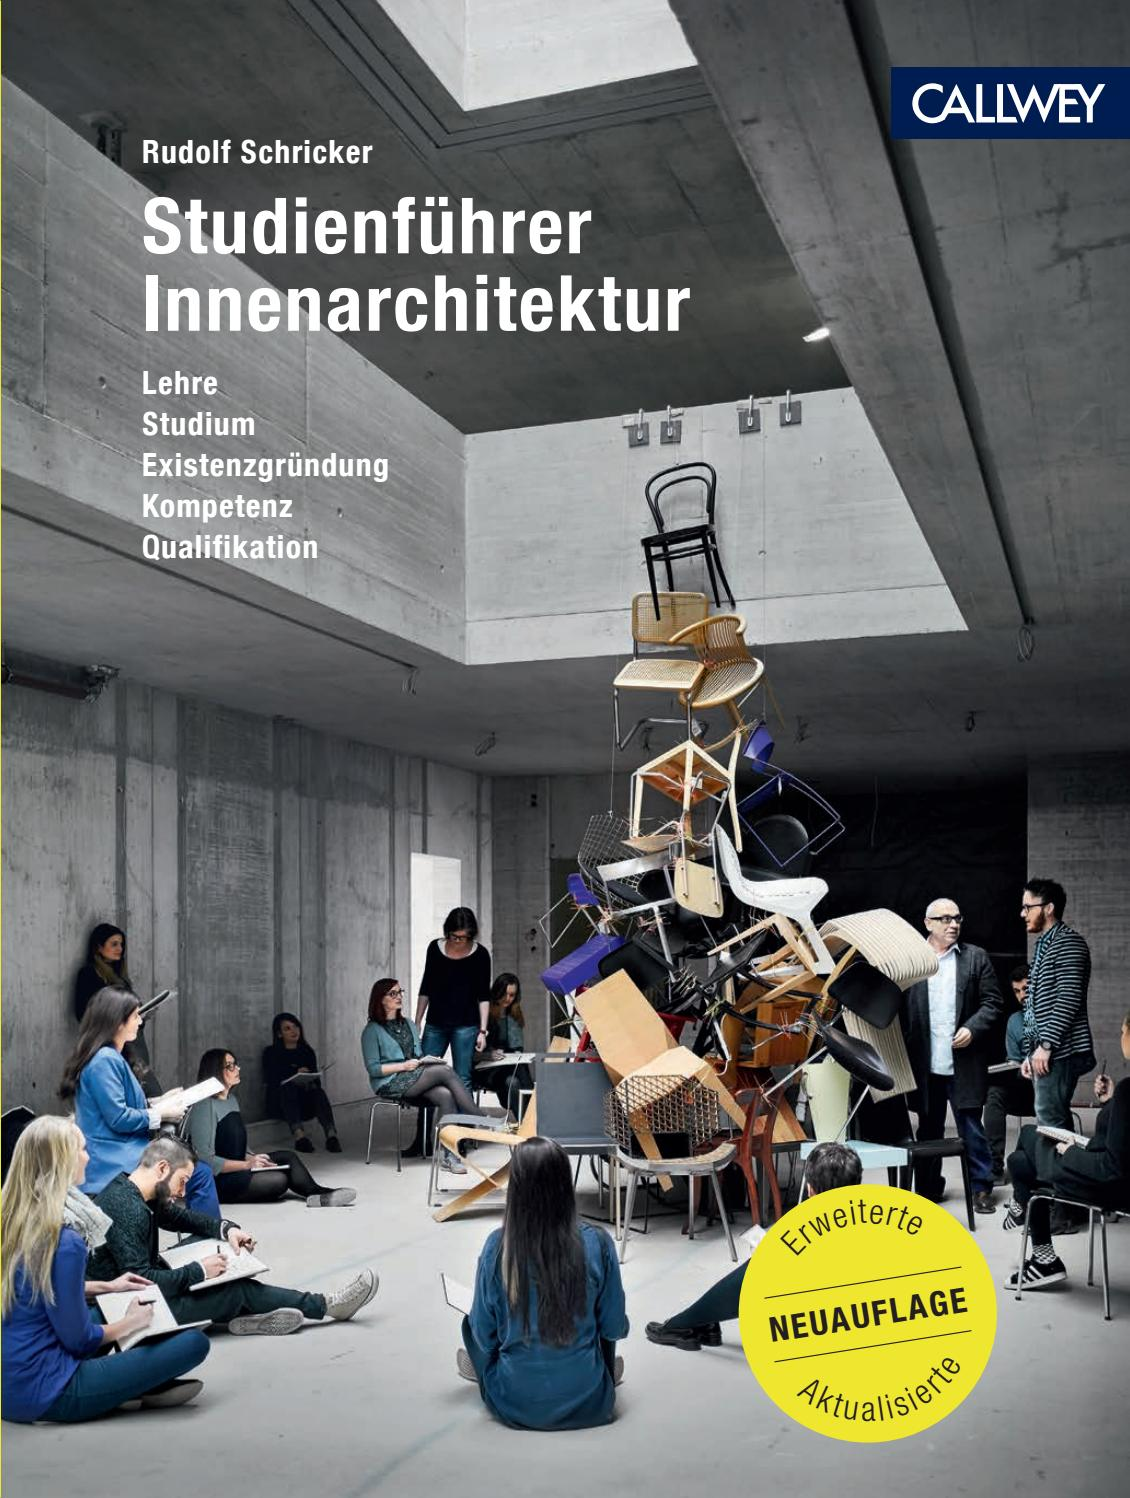 Innenarchitektur Ostwestfalen Lippe Studienführer Innenarchitektur By Georg D W Callwey Gmbh Co Kg